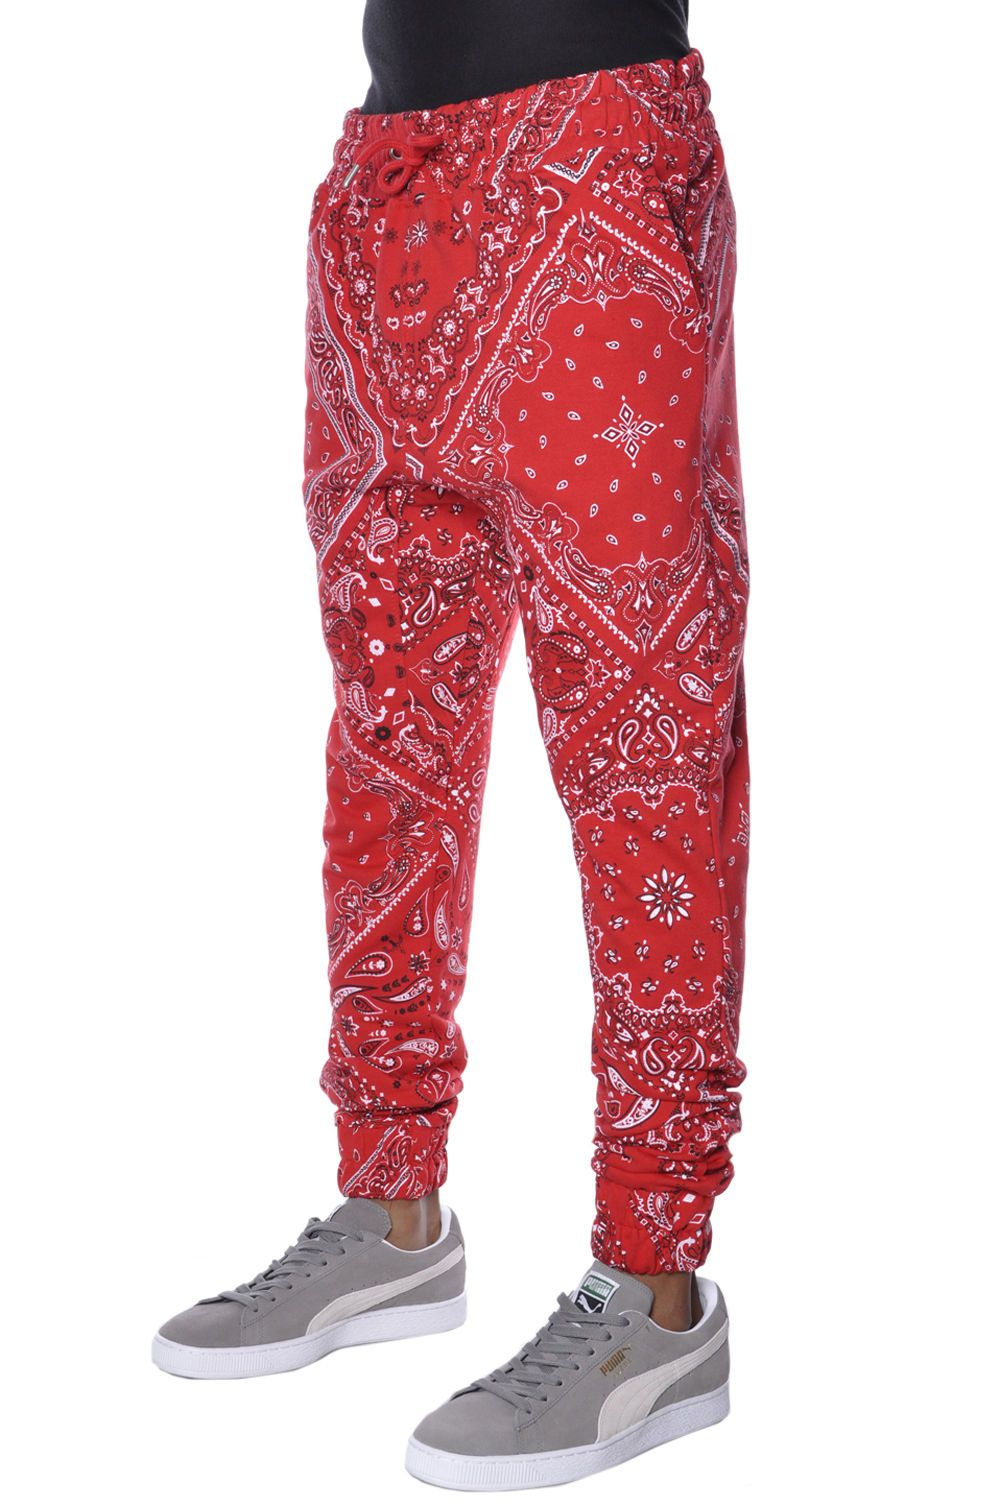 plain red bandana joggers outfit size